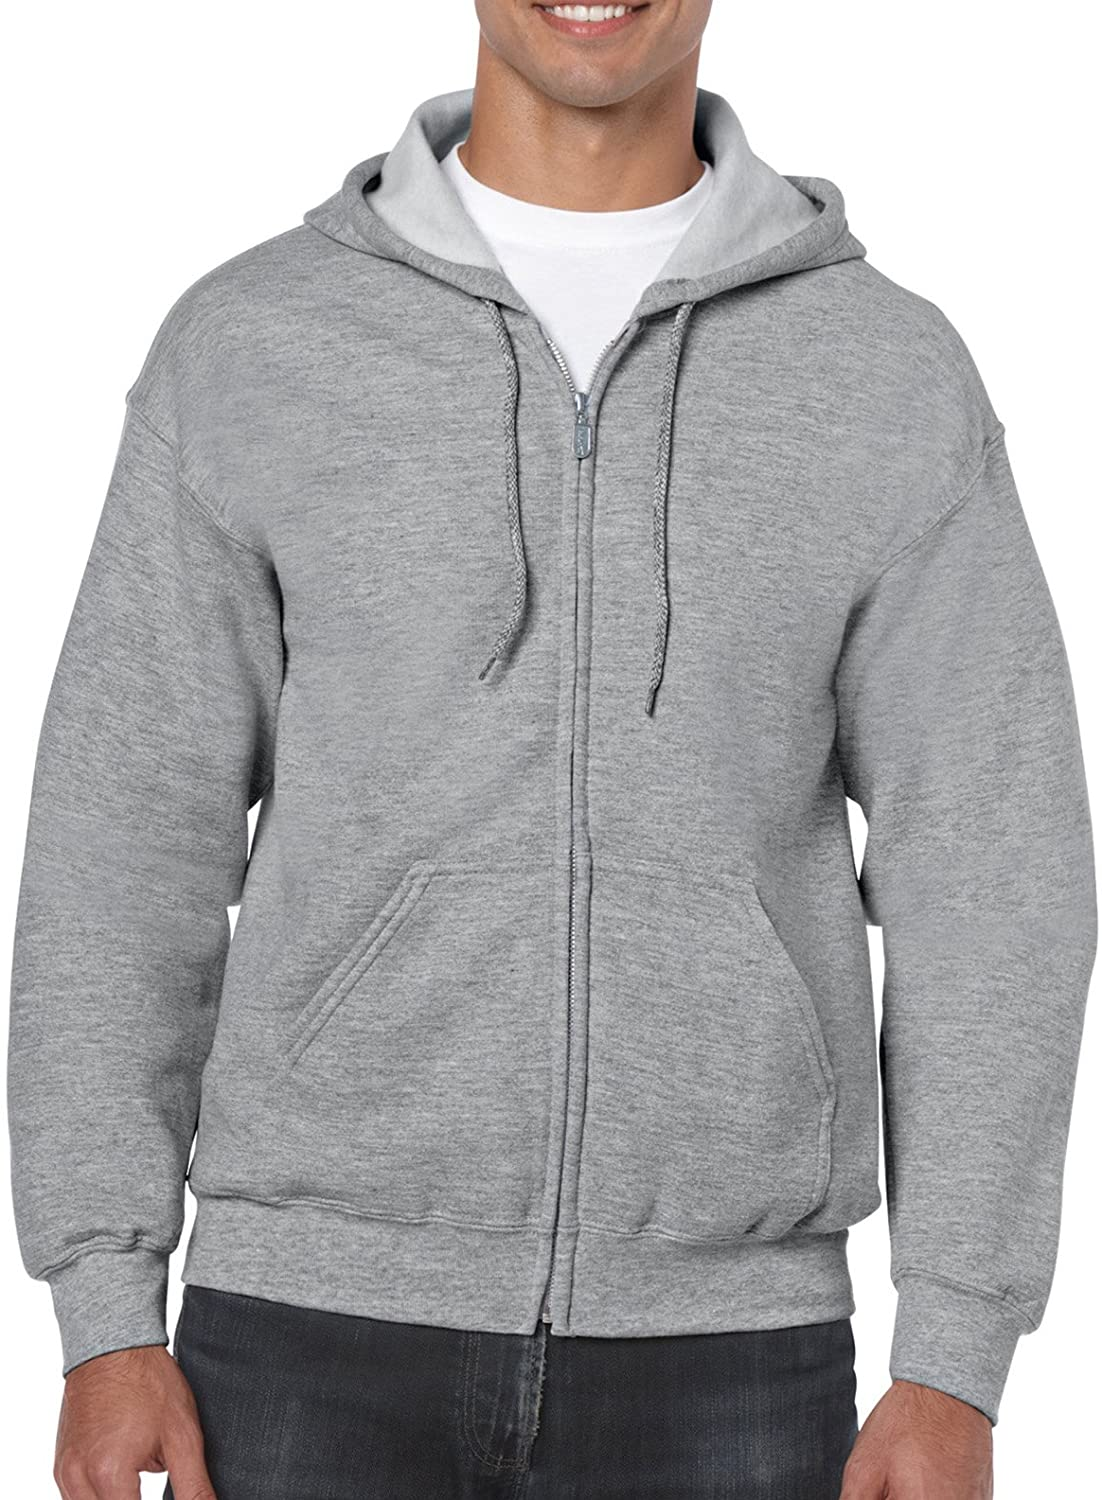 Gildan Men's Fleece Zip Hooded Sweatshirt at  Men's Clothing store